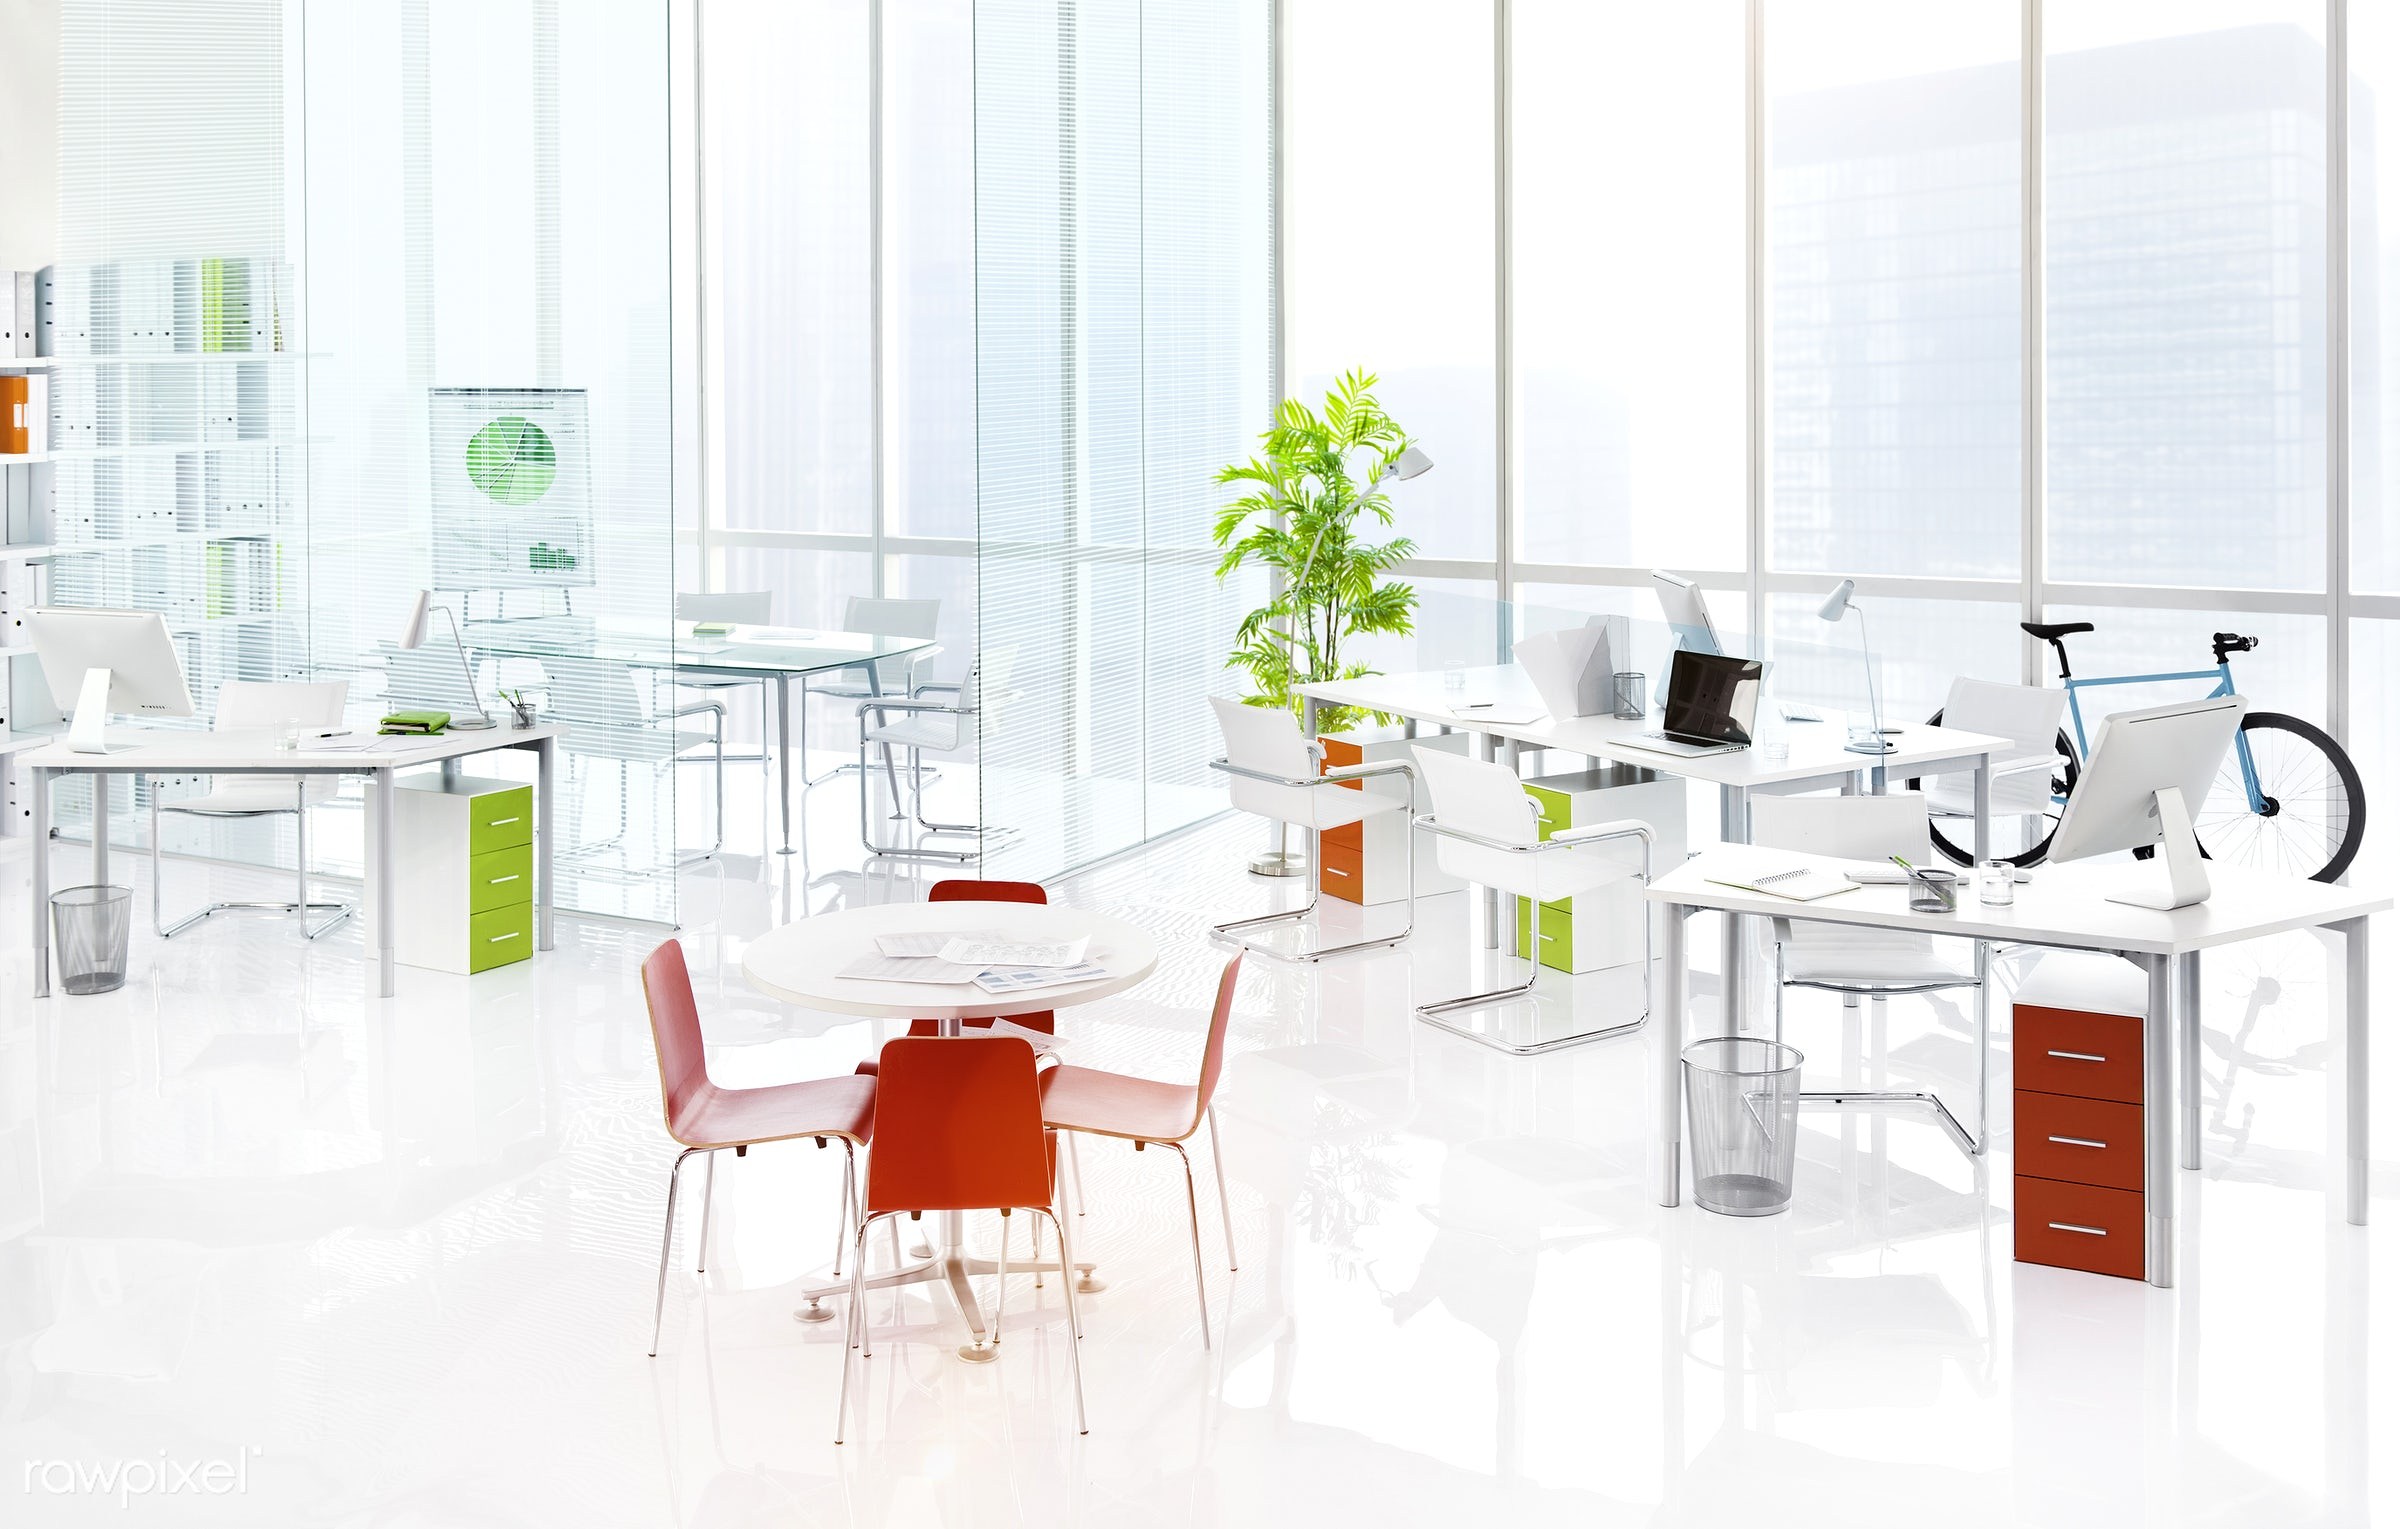 An empty office - architecture, bicycle, blue bicycle, brainstorming, build structure, business, center, city, city view,...